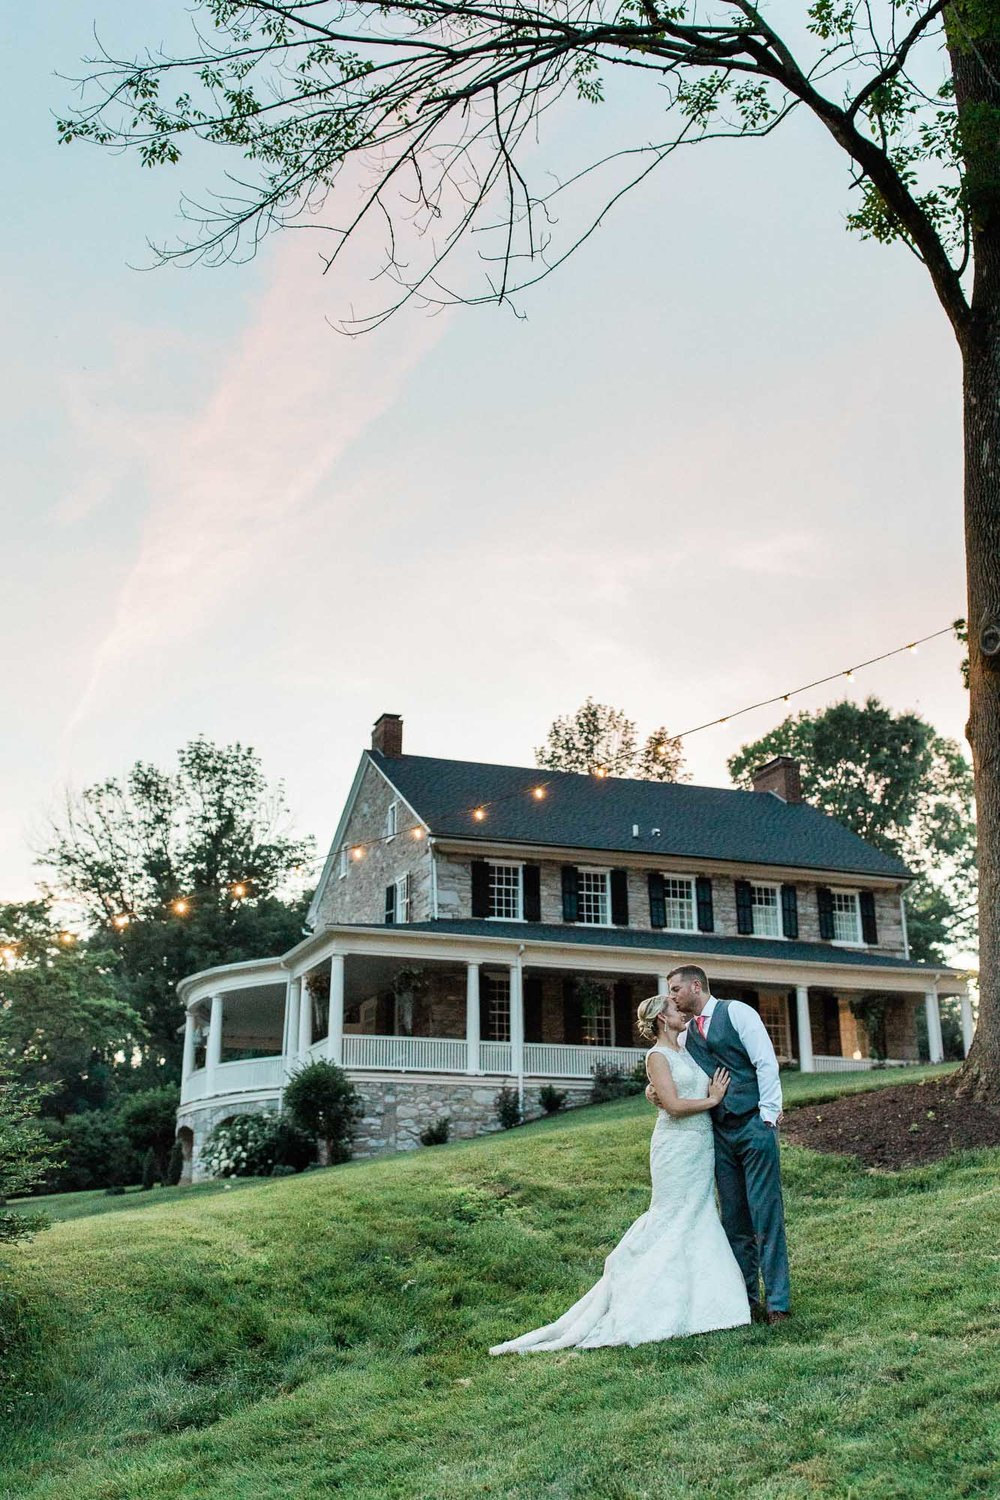 Allenberry-resort-historic-pennsylvania-wedding-10663.jpg